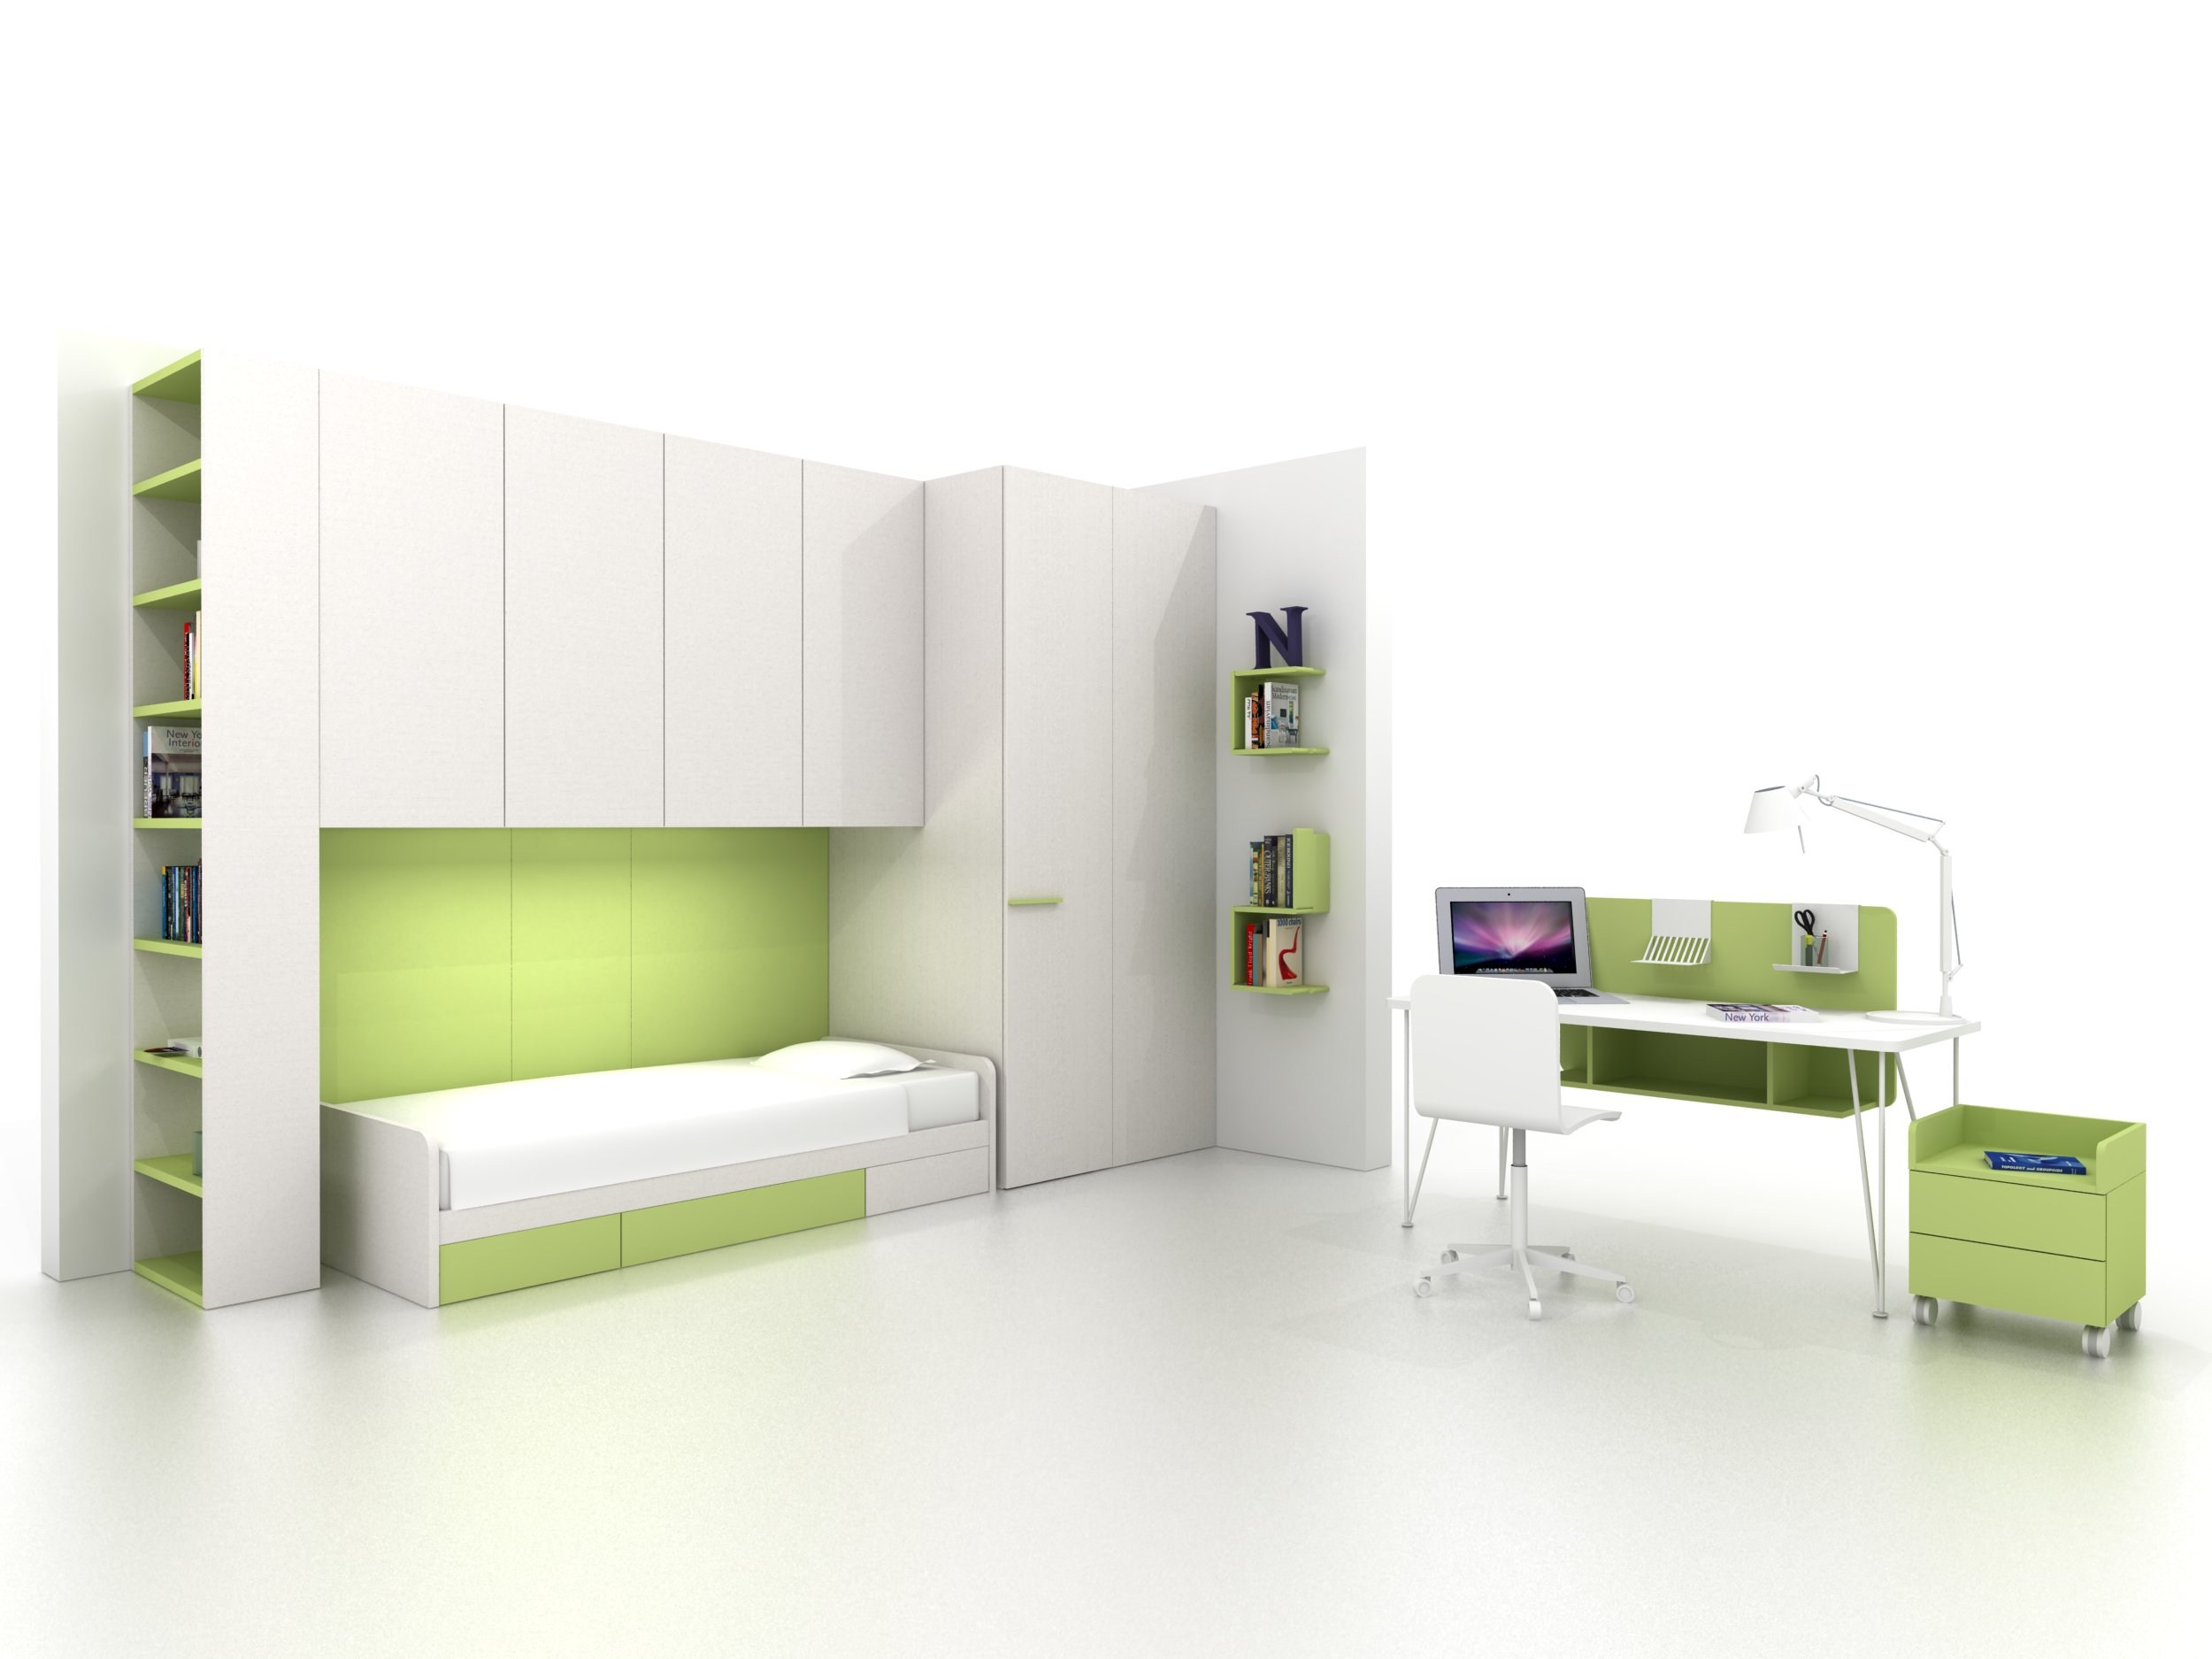 chambre d 39 ado composable avec pont de lit z406 by zalf. Black Bedroom Furniture Sets. Home Design Ideas